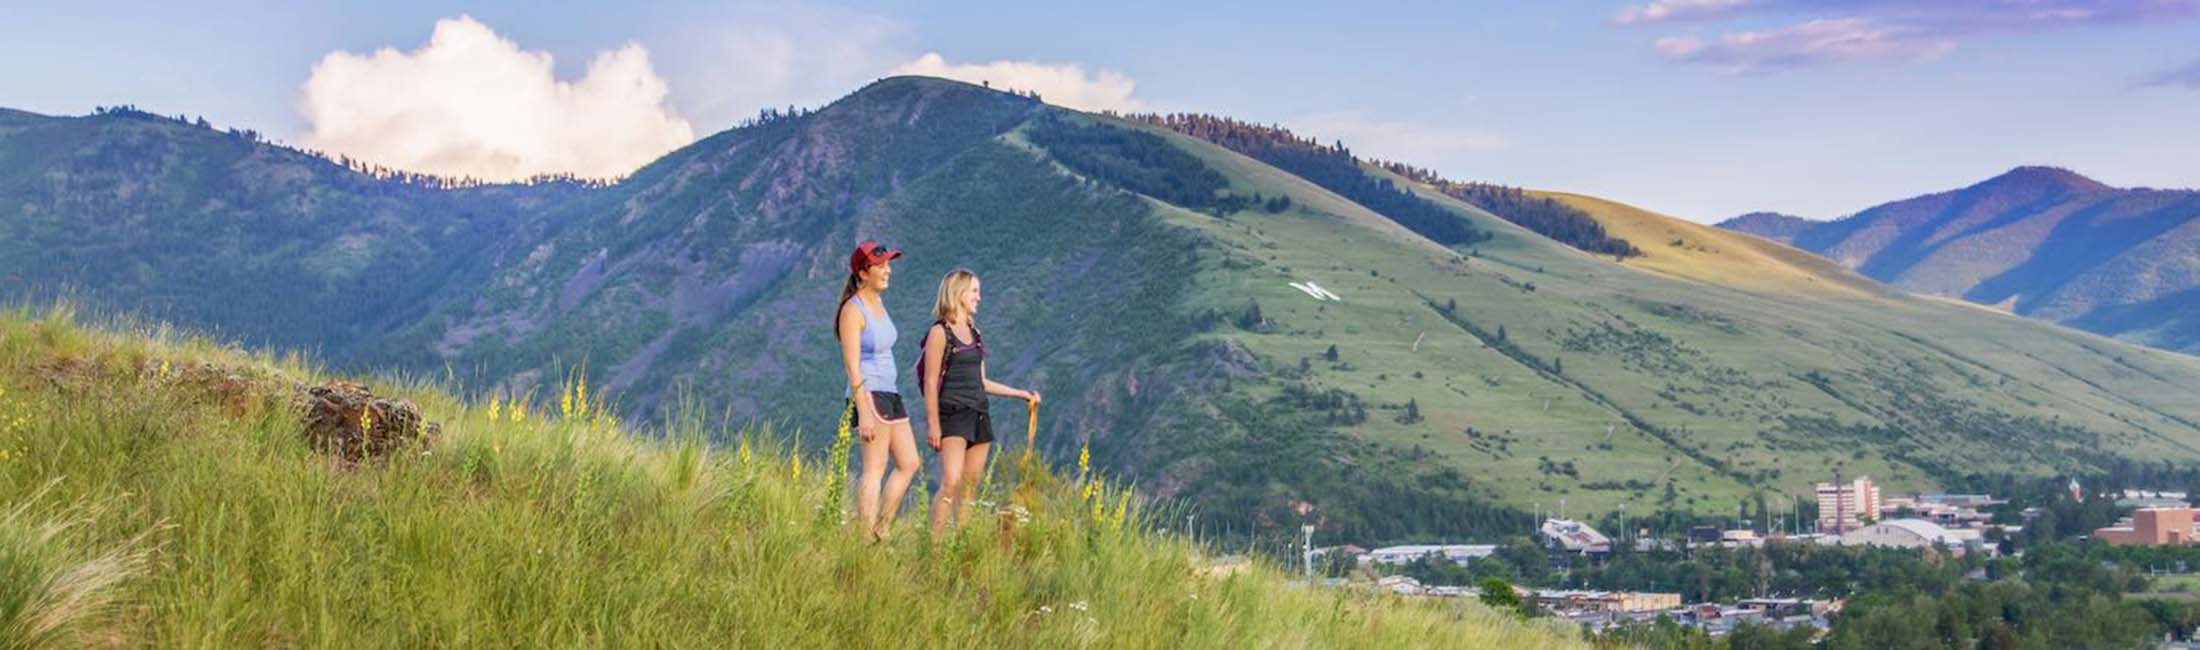 5 Things I Wish I Knew Before Moving to Missoula